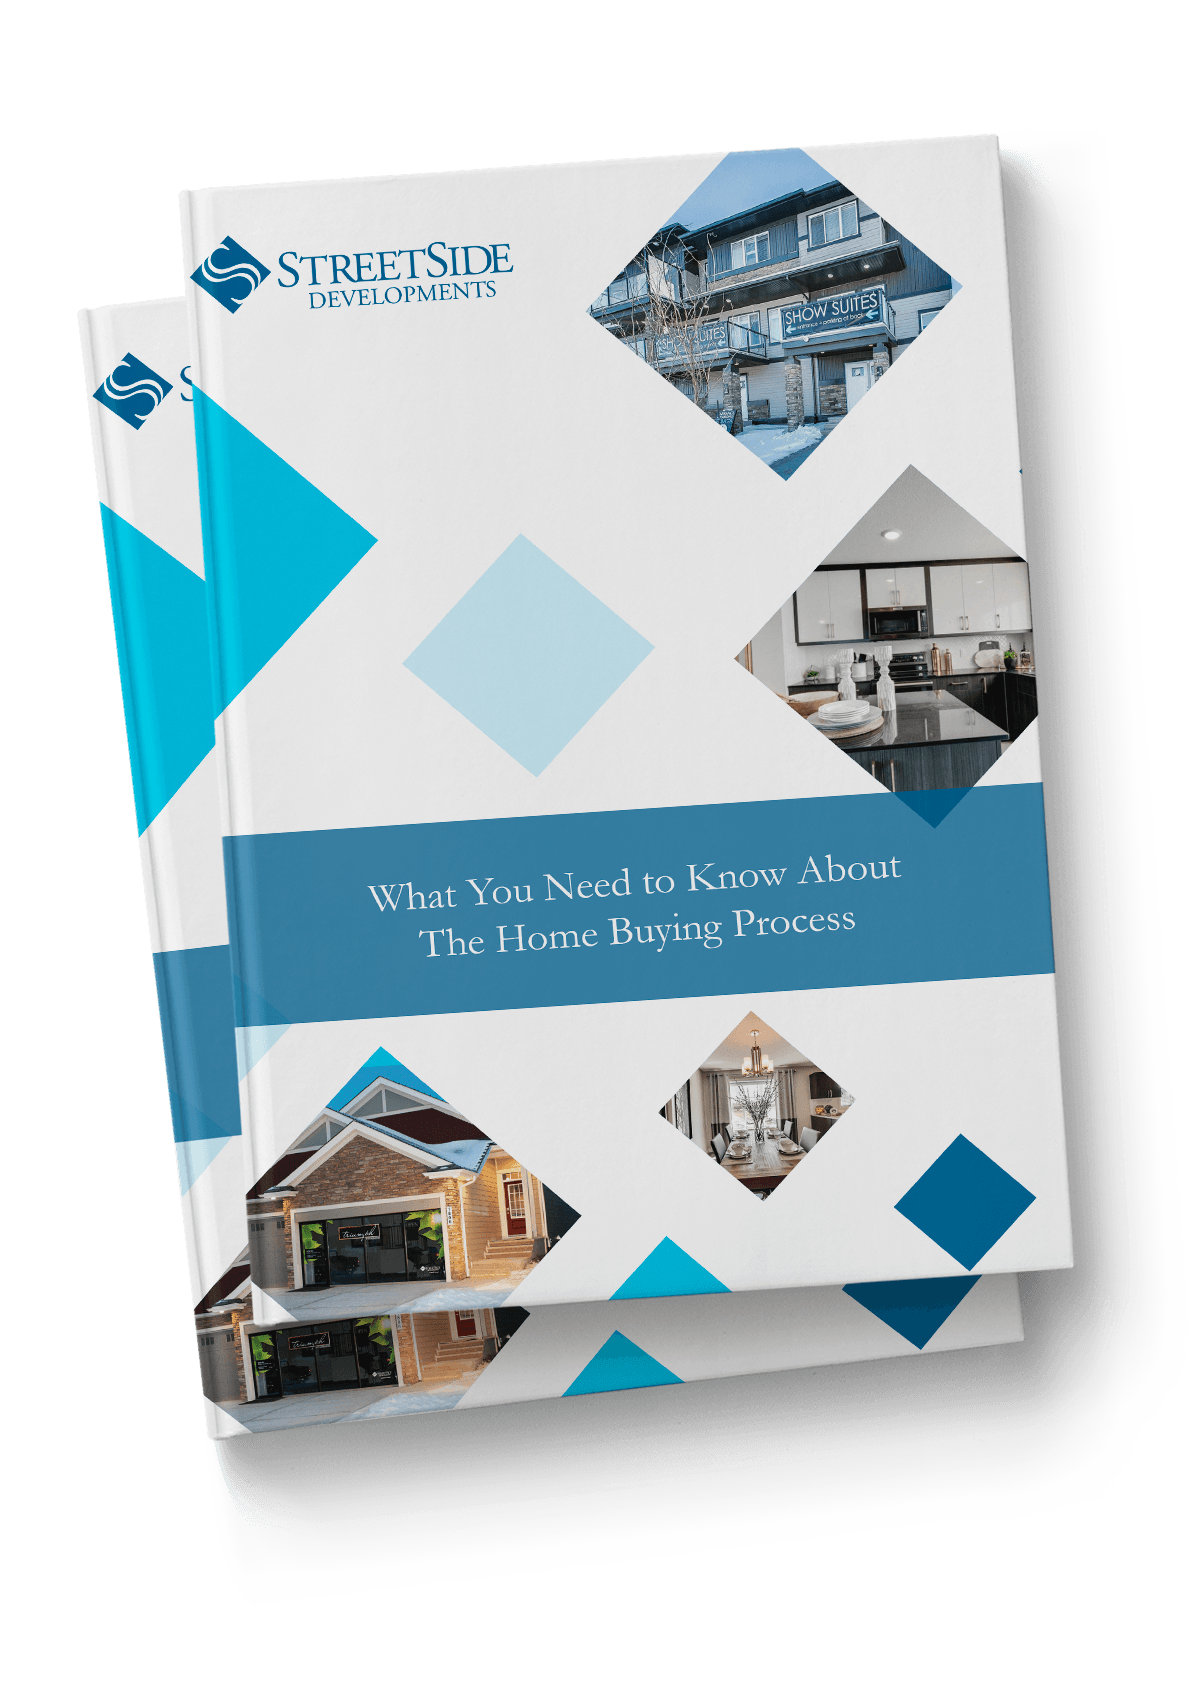 what you need know about home buying process cover image